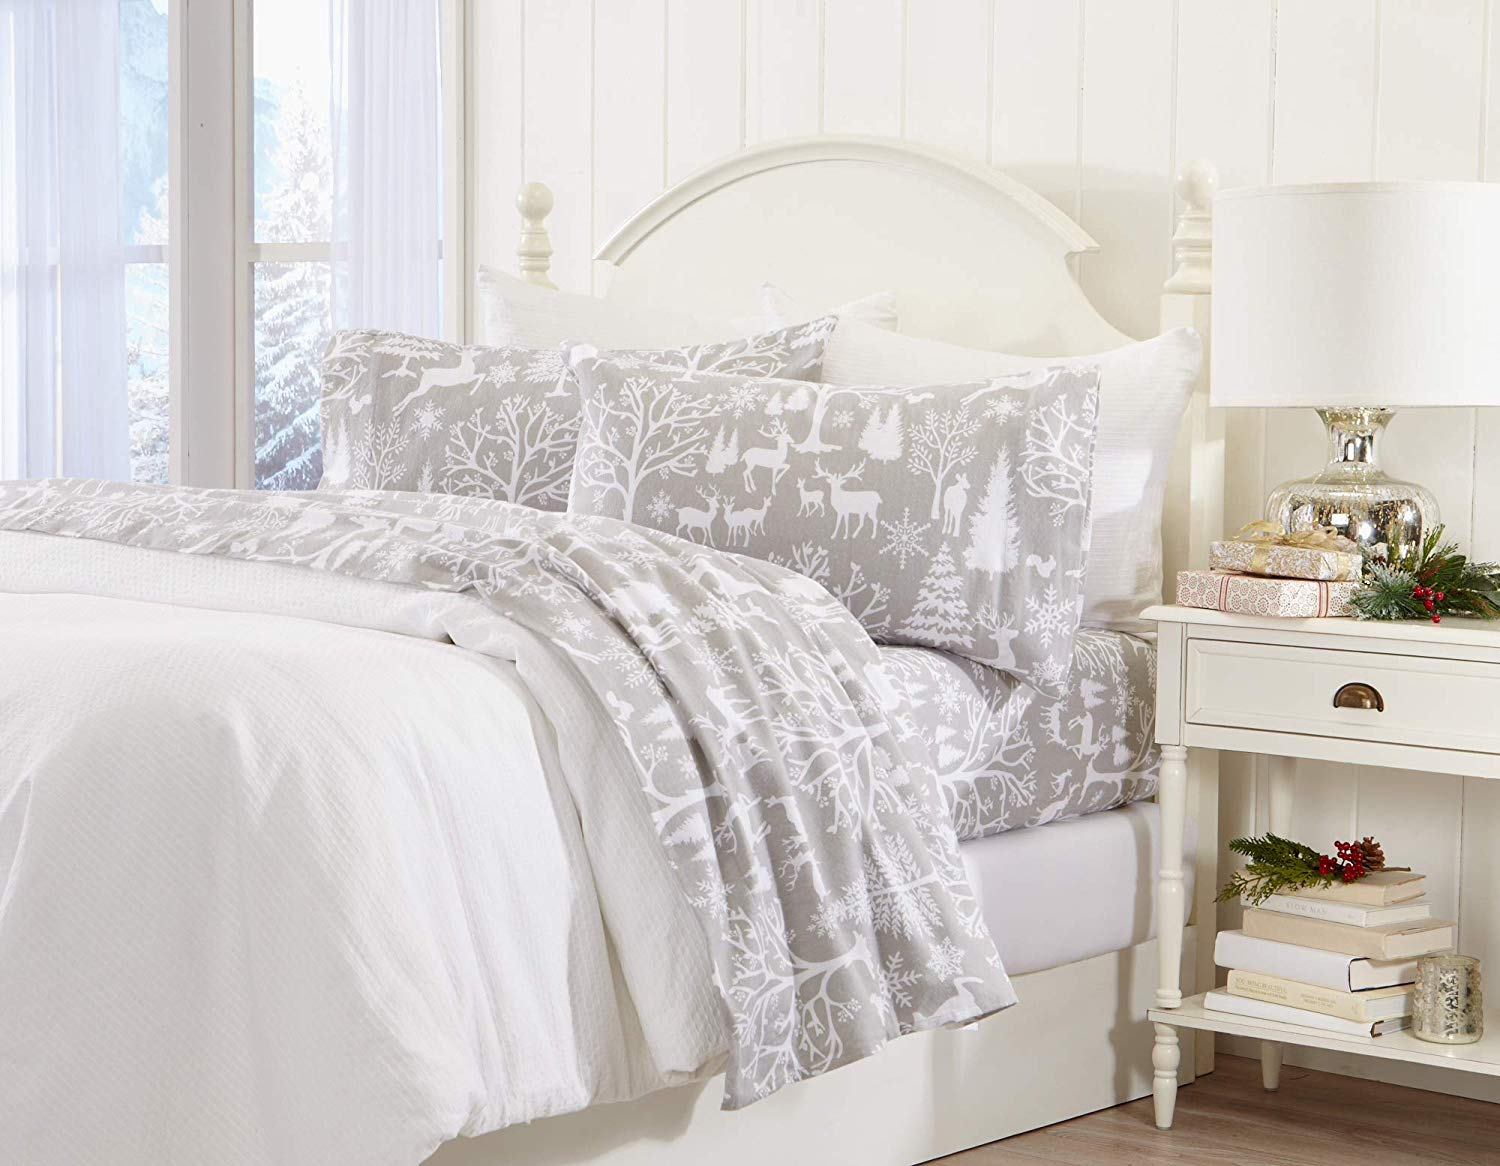 Top 10 Best Flannel Sheets in 2020 Reviews & Buyer's Guide